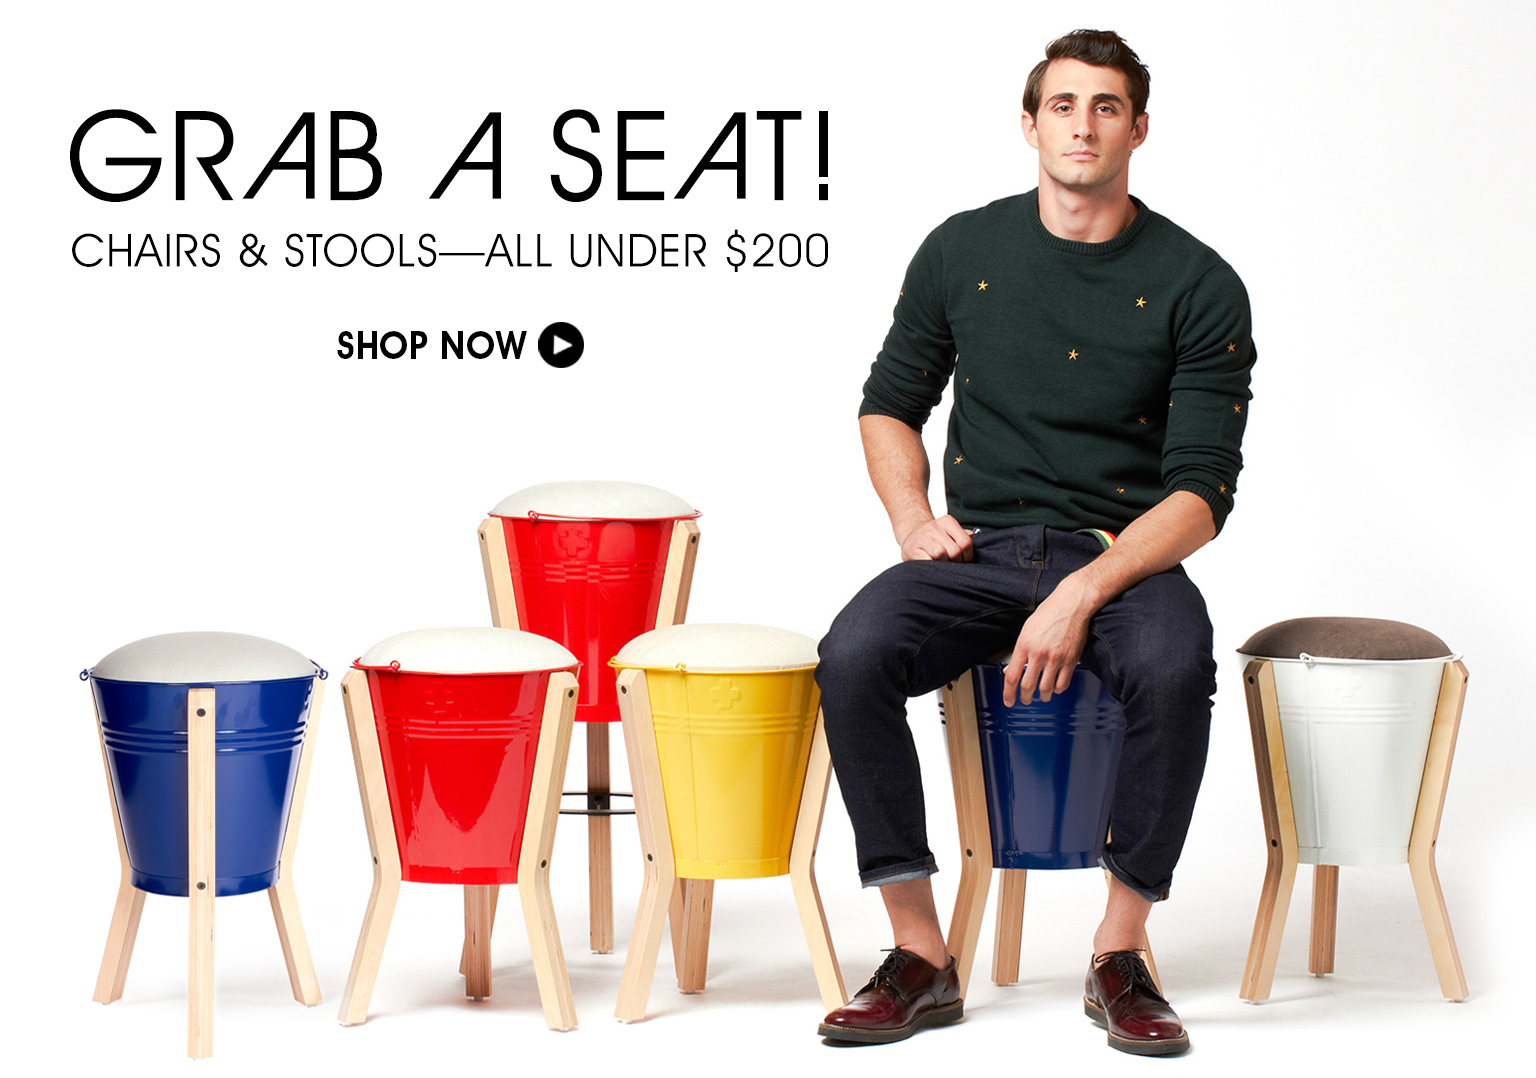 Grab A Seat! Shop Chairs & Stools - All Under $200